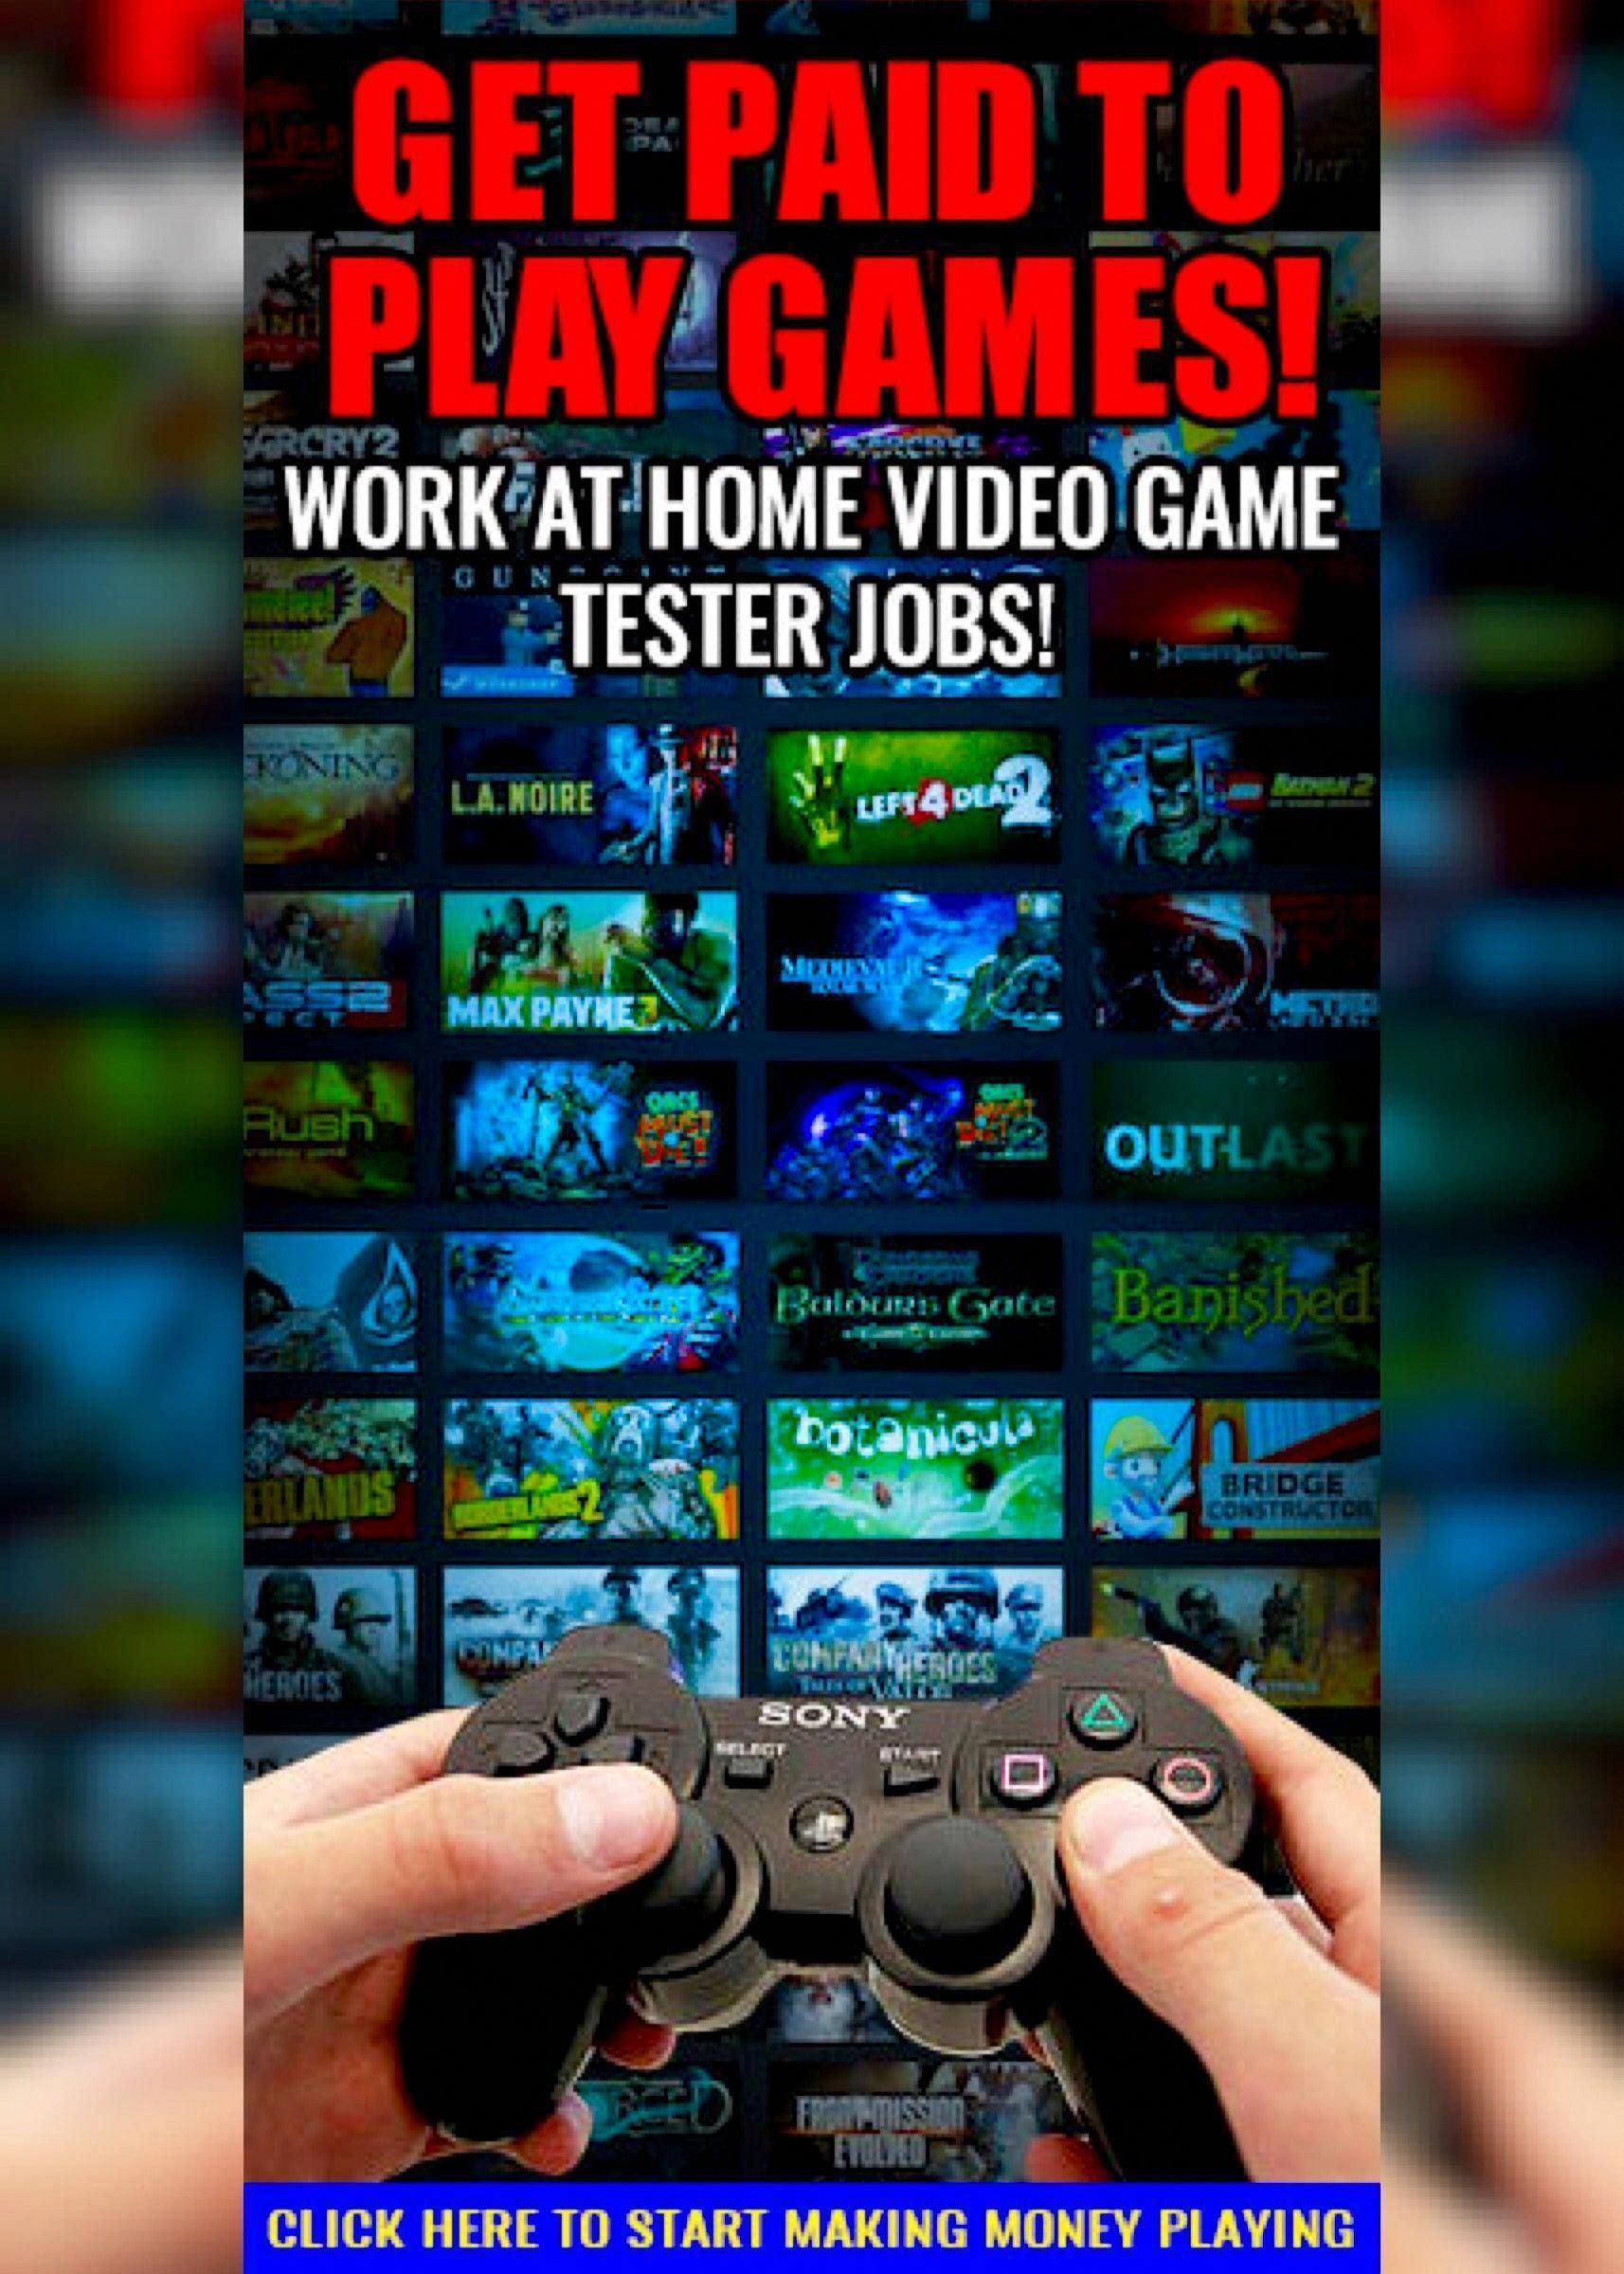 Work From Home Video Game Tester Jobs Start Making Money Playing